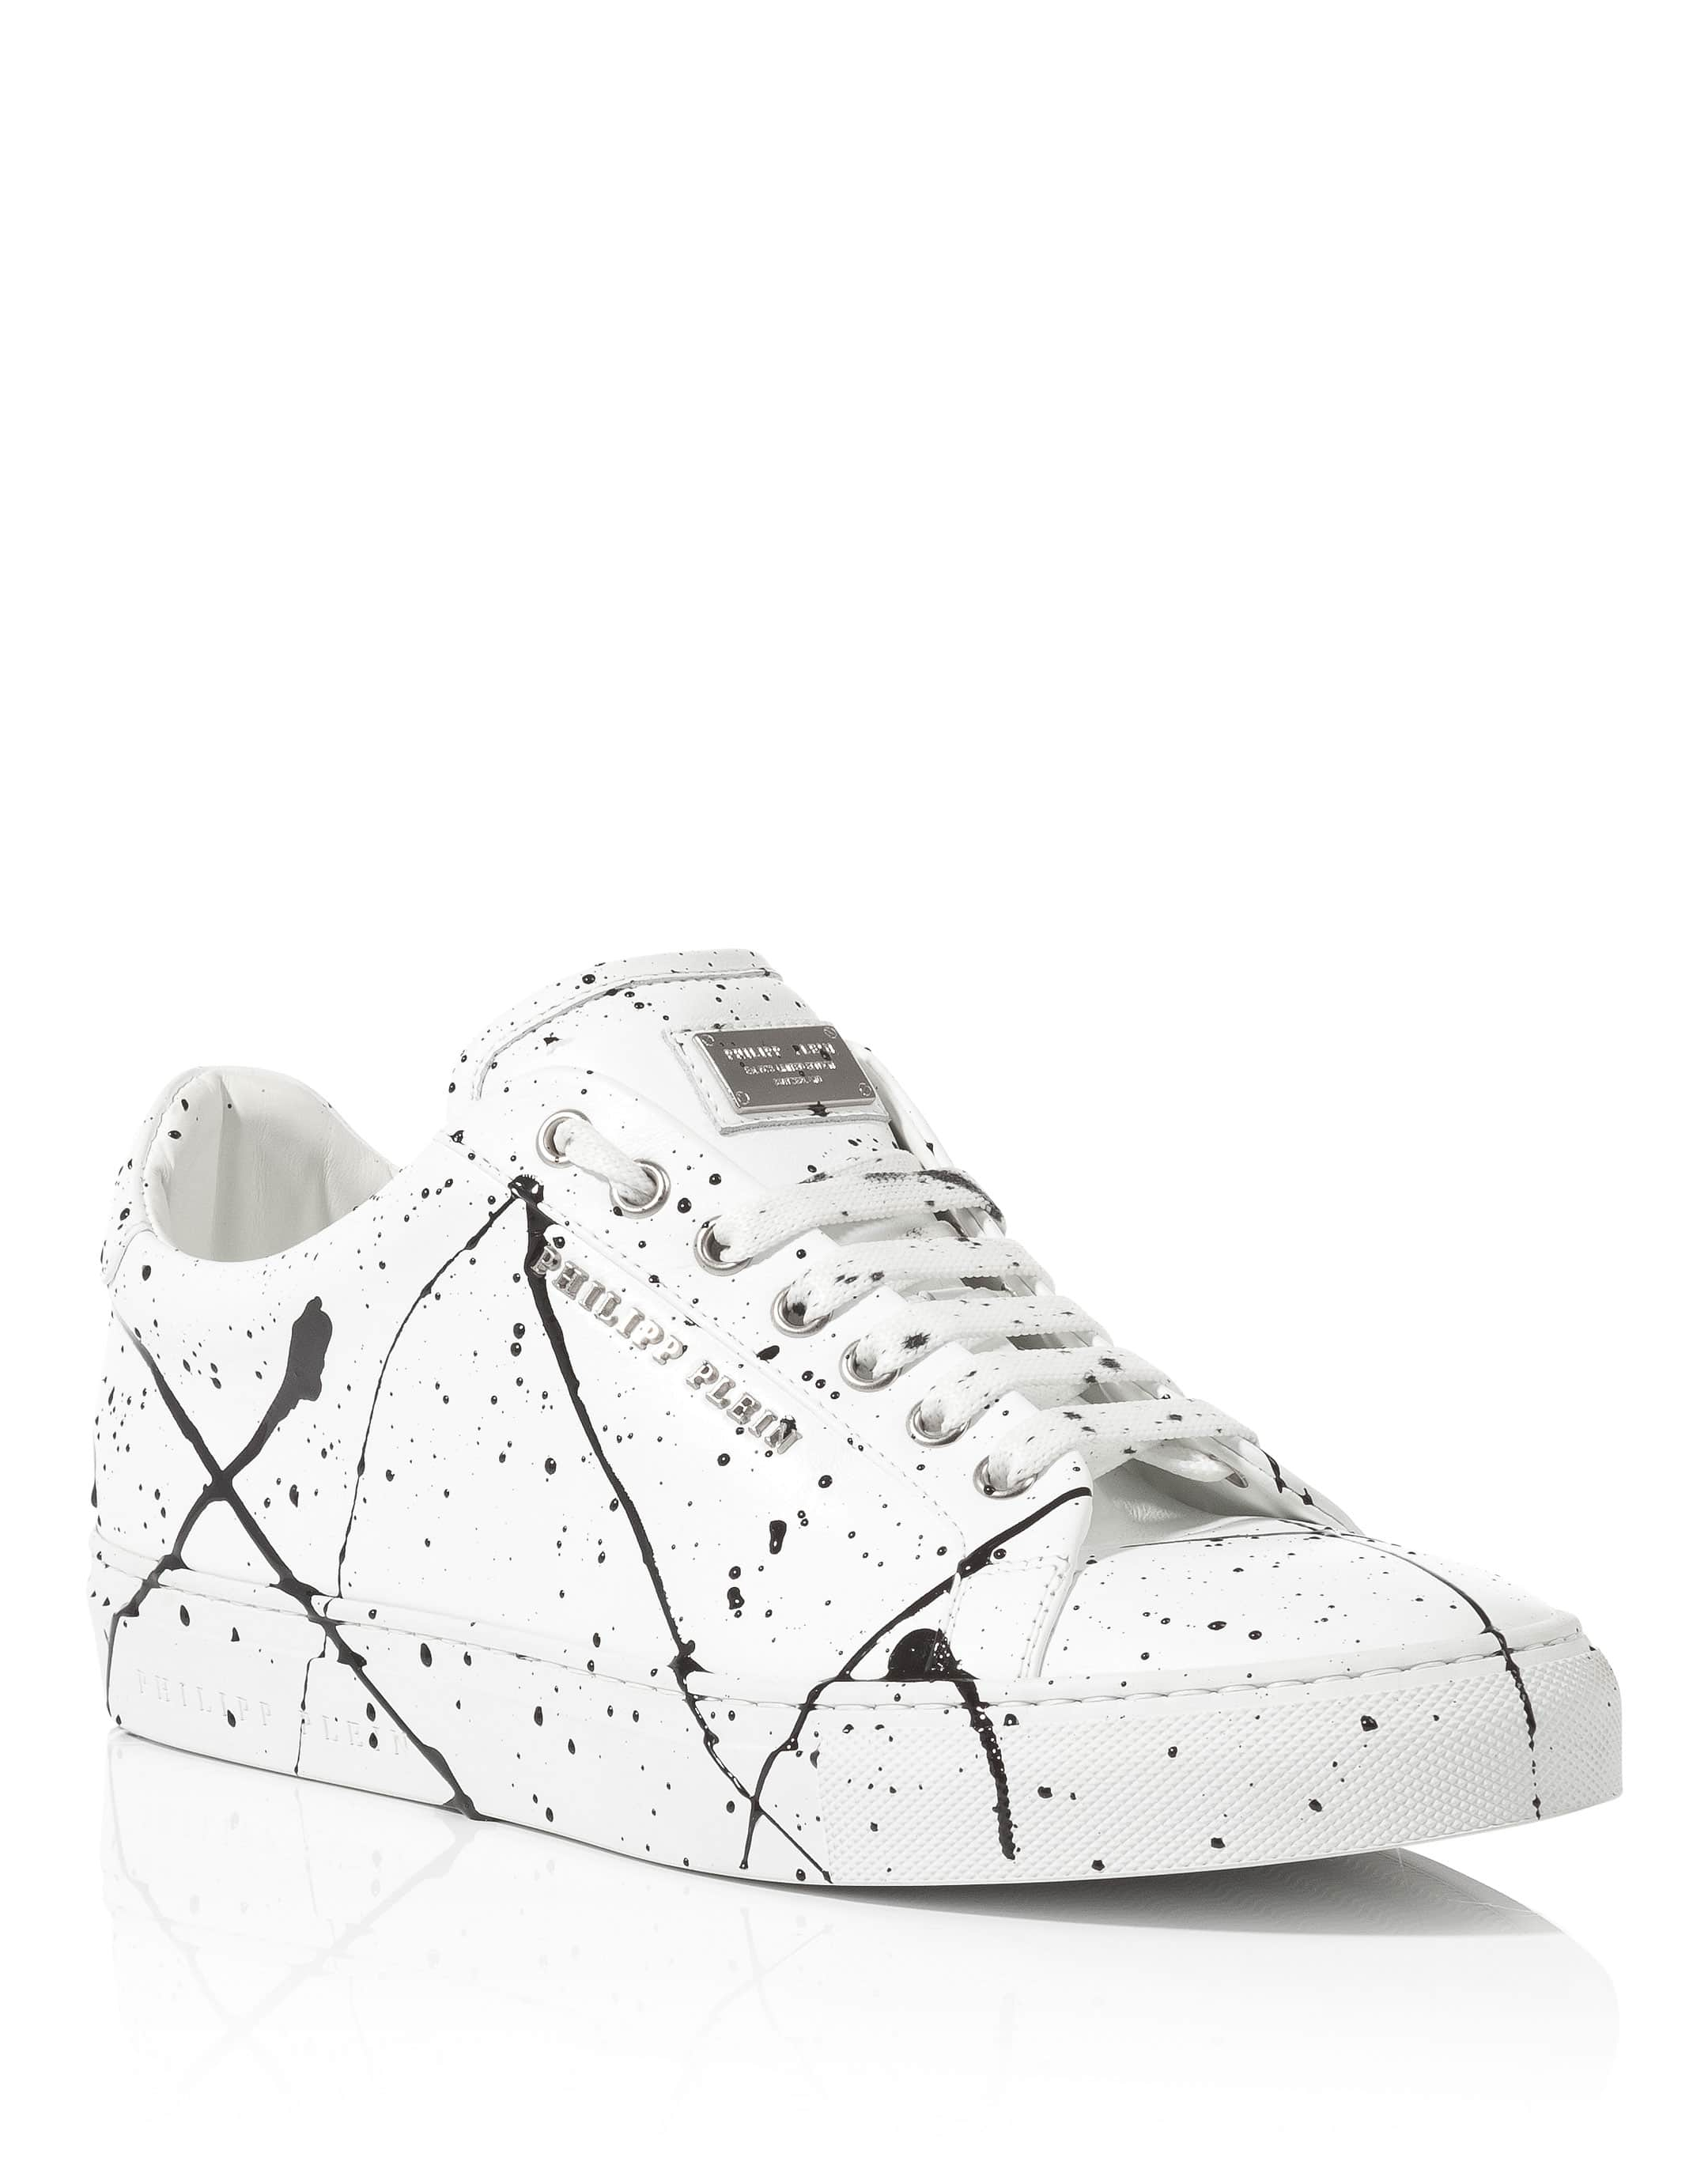 Philipp Plein Small Town sneakers discount professional Cwaht6ET3